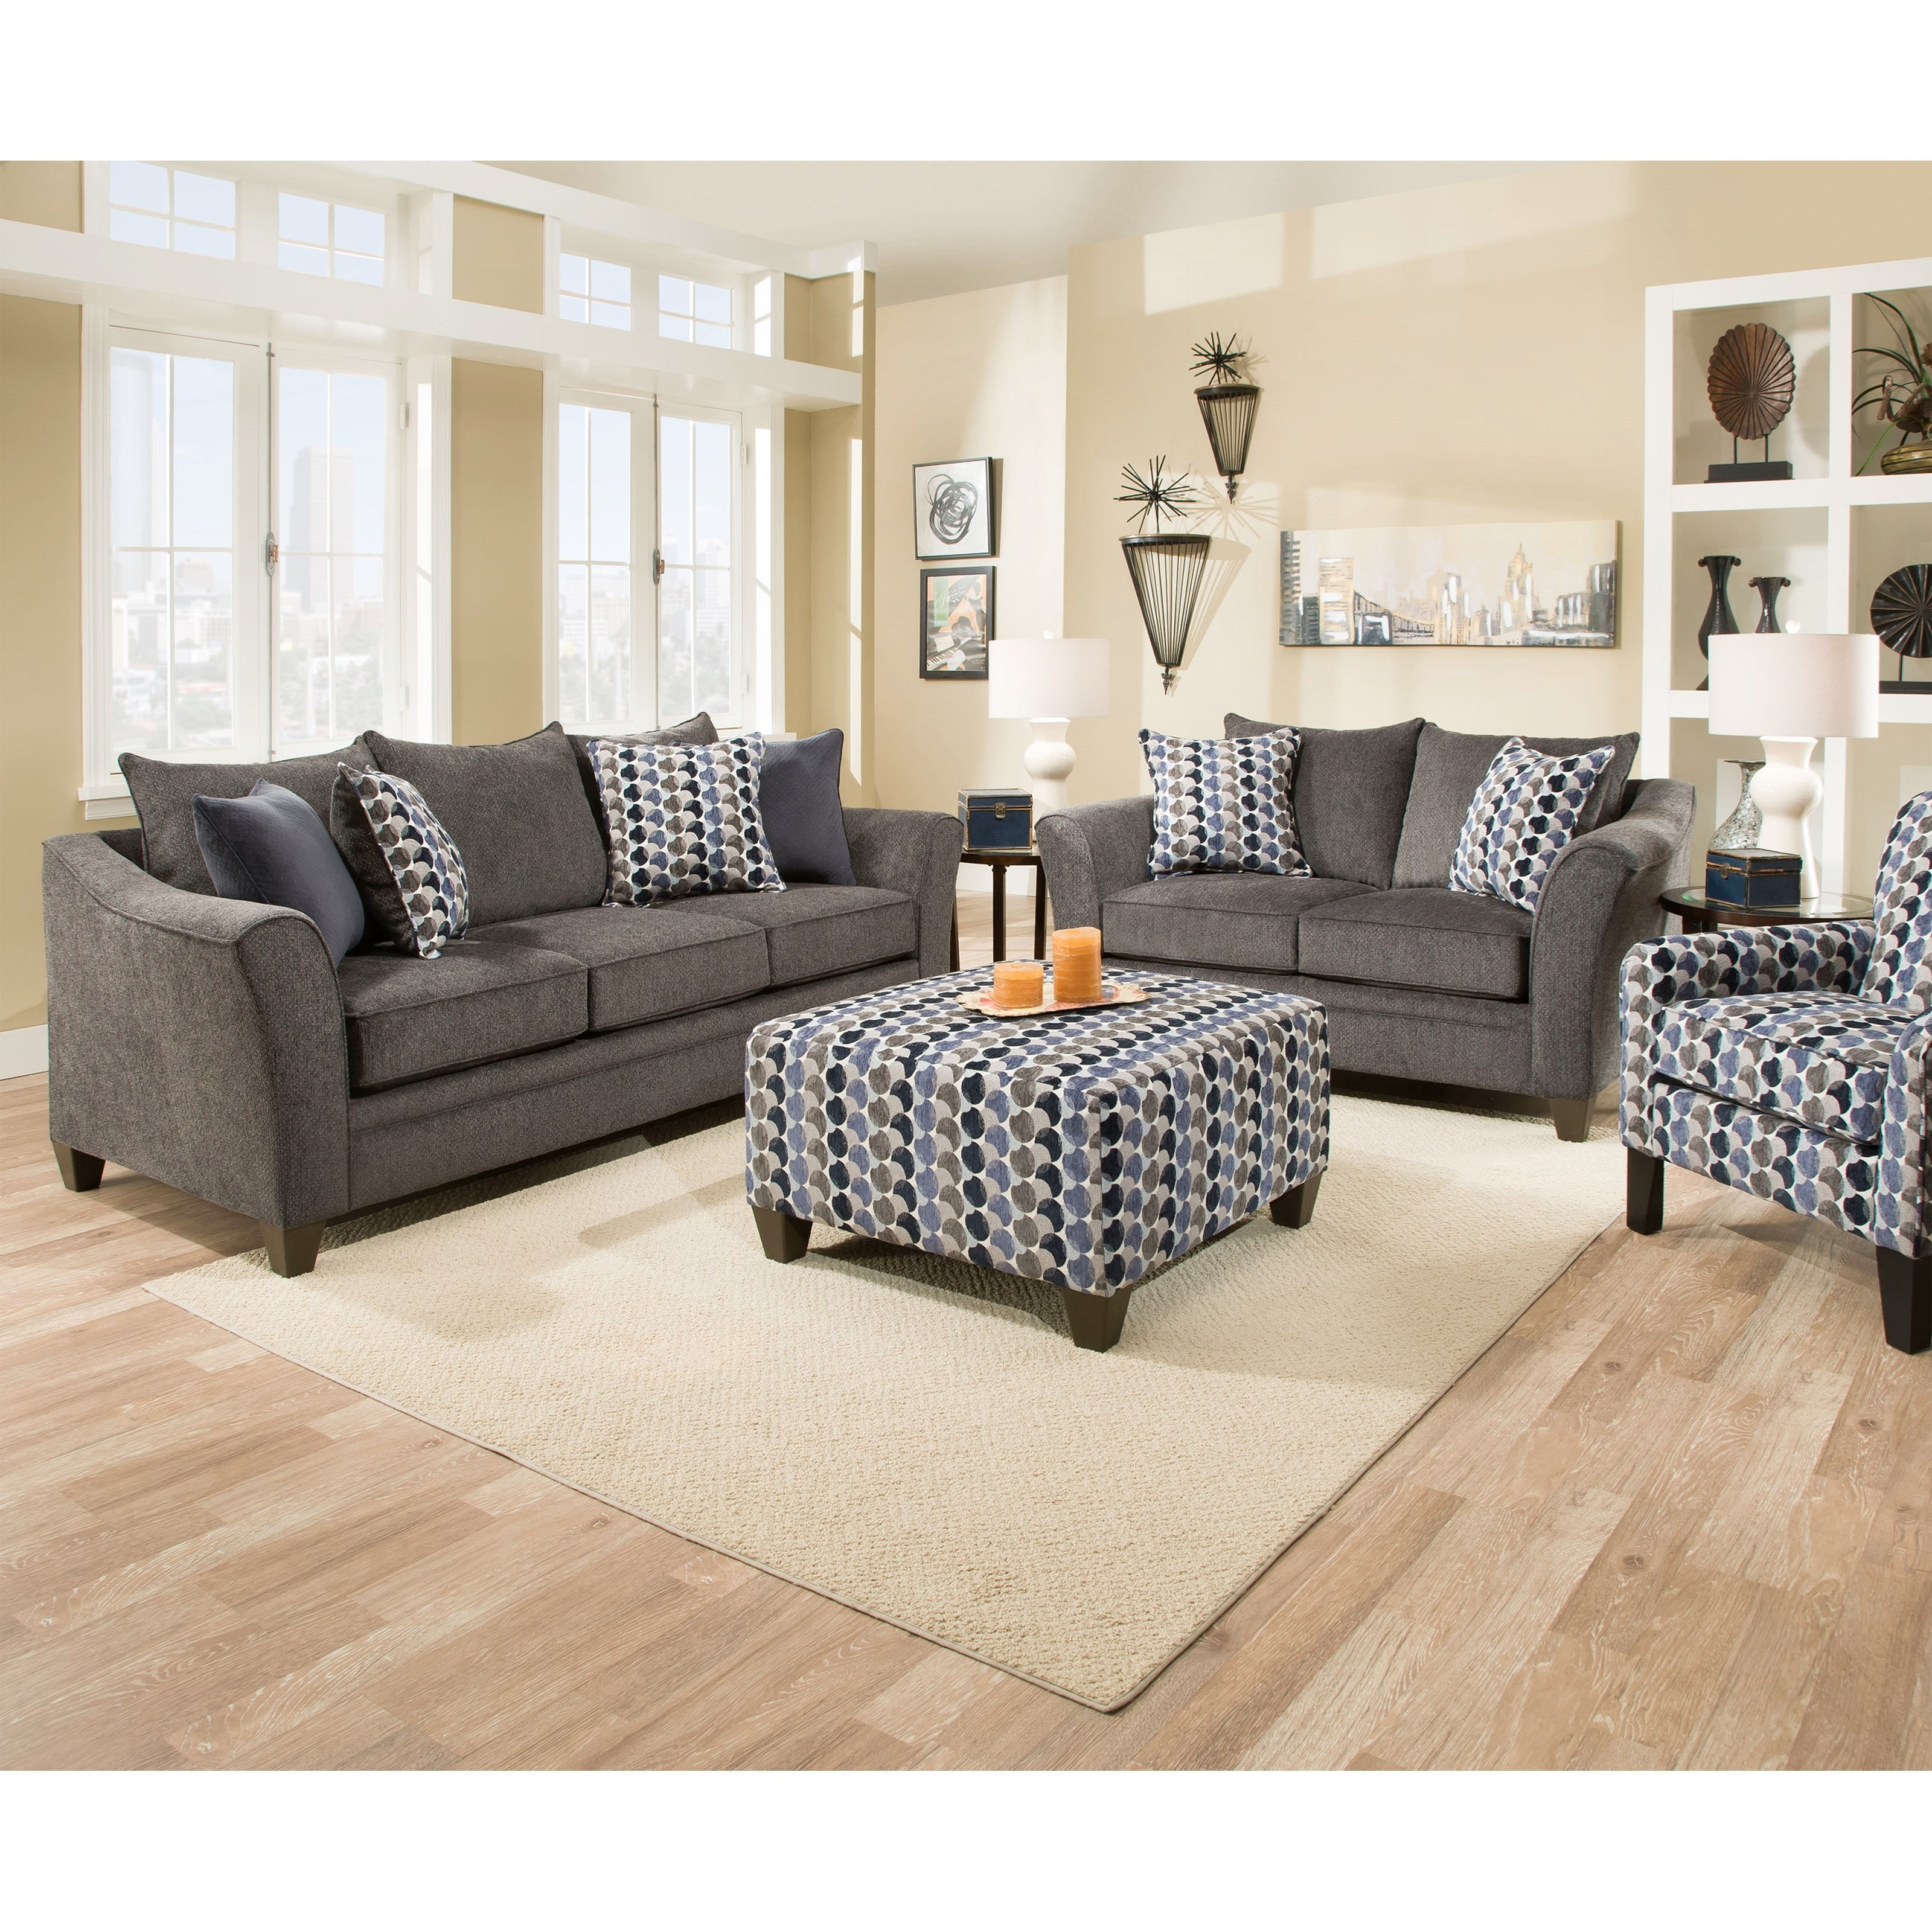 6485 Stationary Living Room Group by United Furniture Industries at Dream Home Interiors